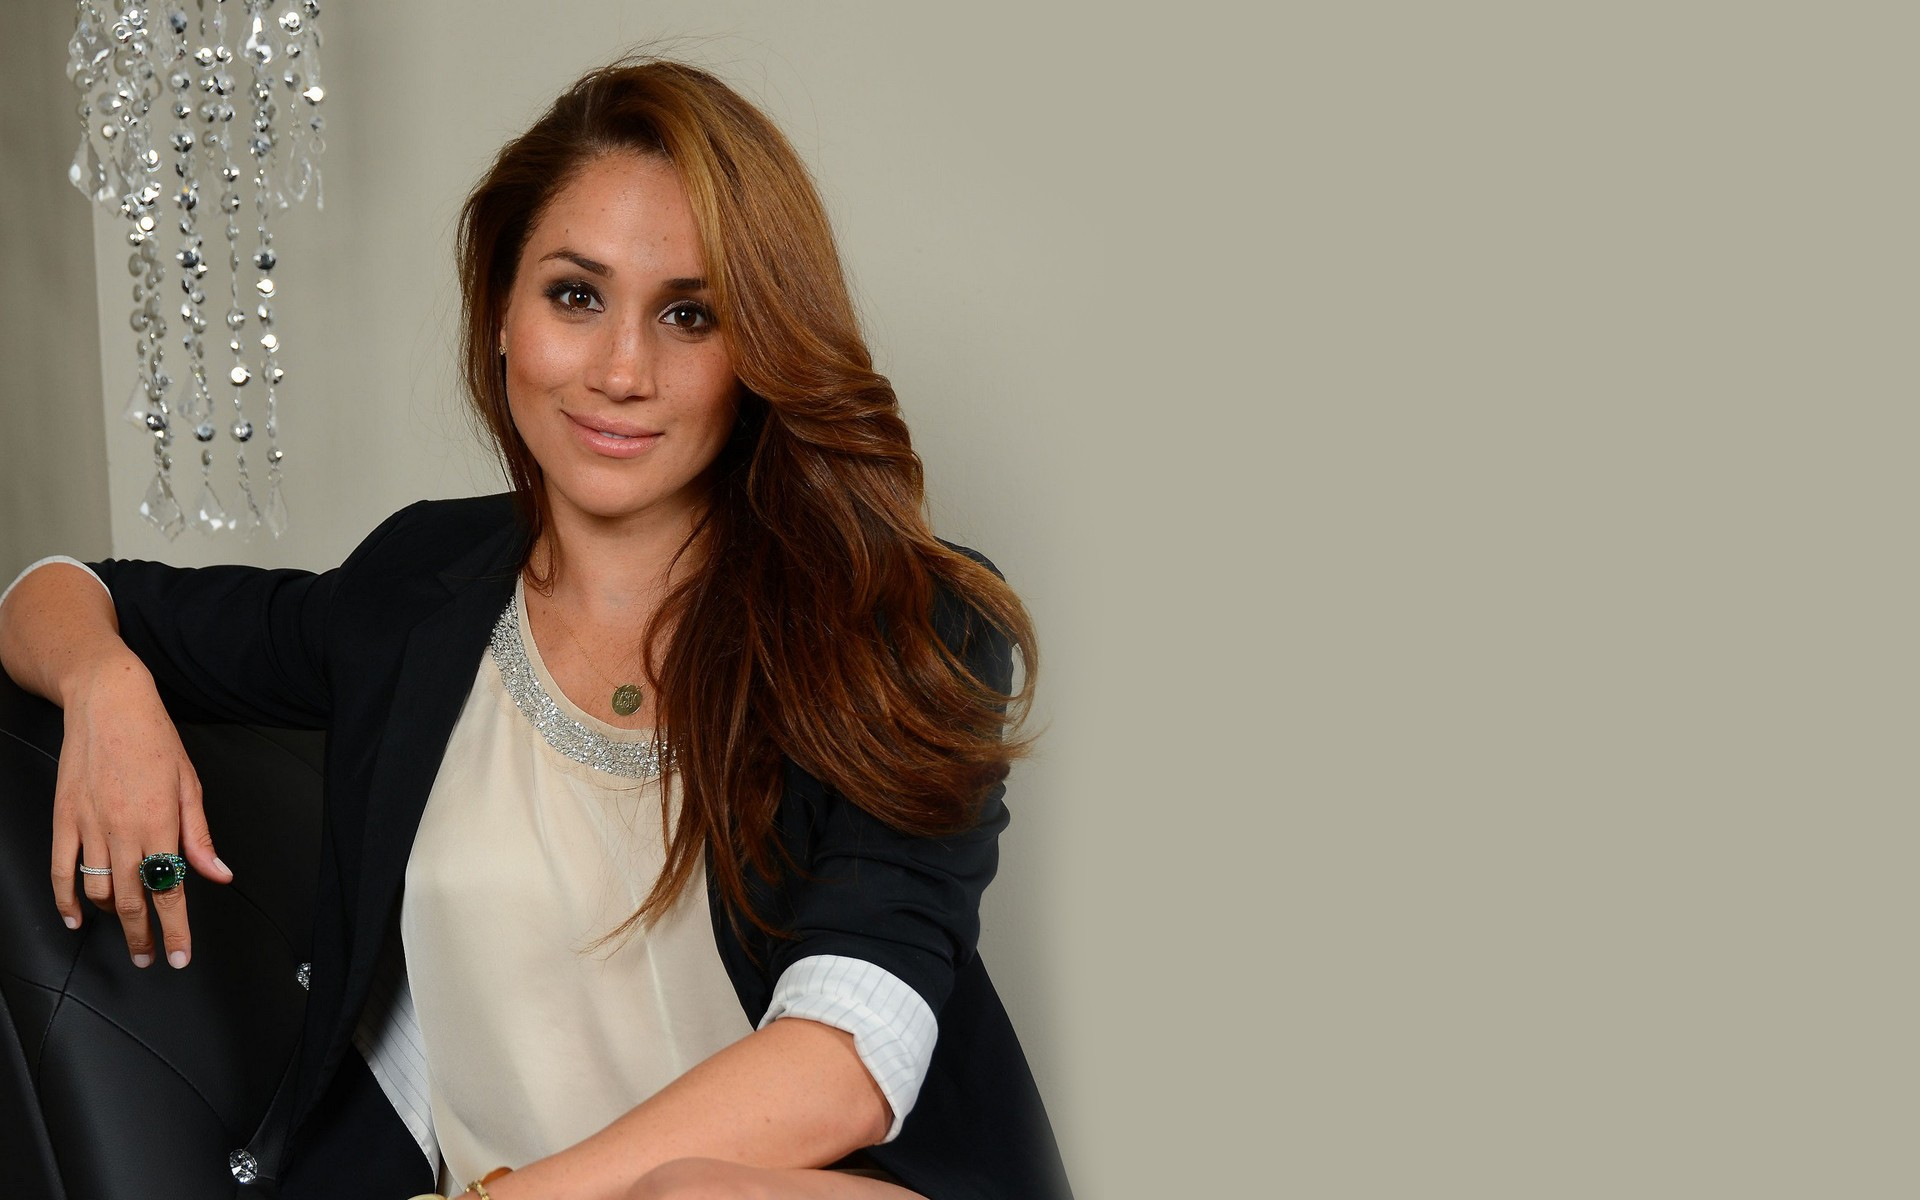 Meghan Markle Wallpapers High Resolution And Quality Download